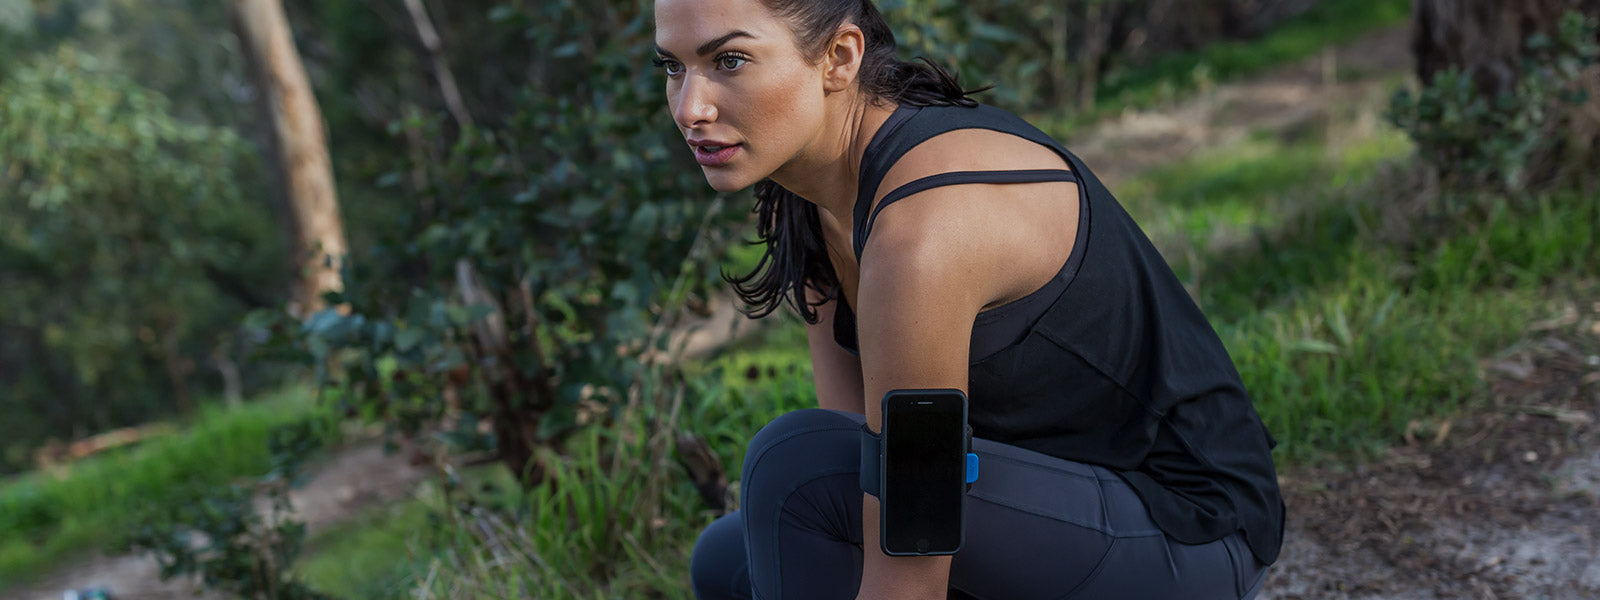 5 Ways To Get Into Shape With Your Smartphone in 2018